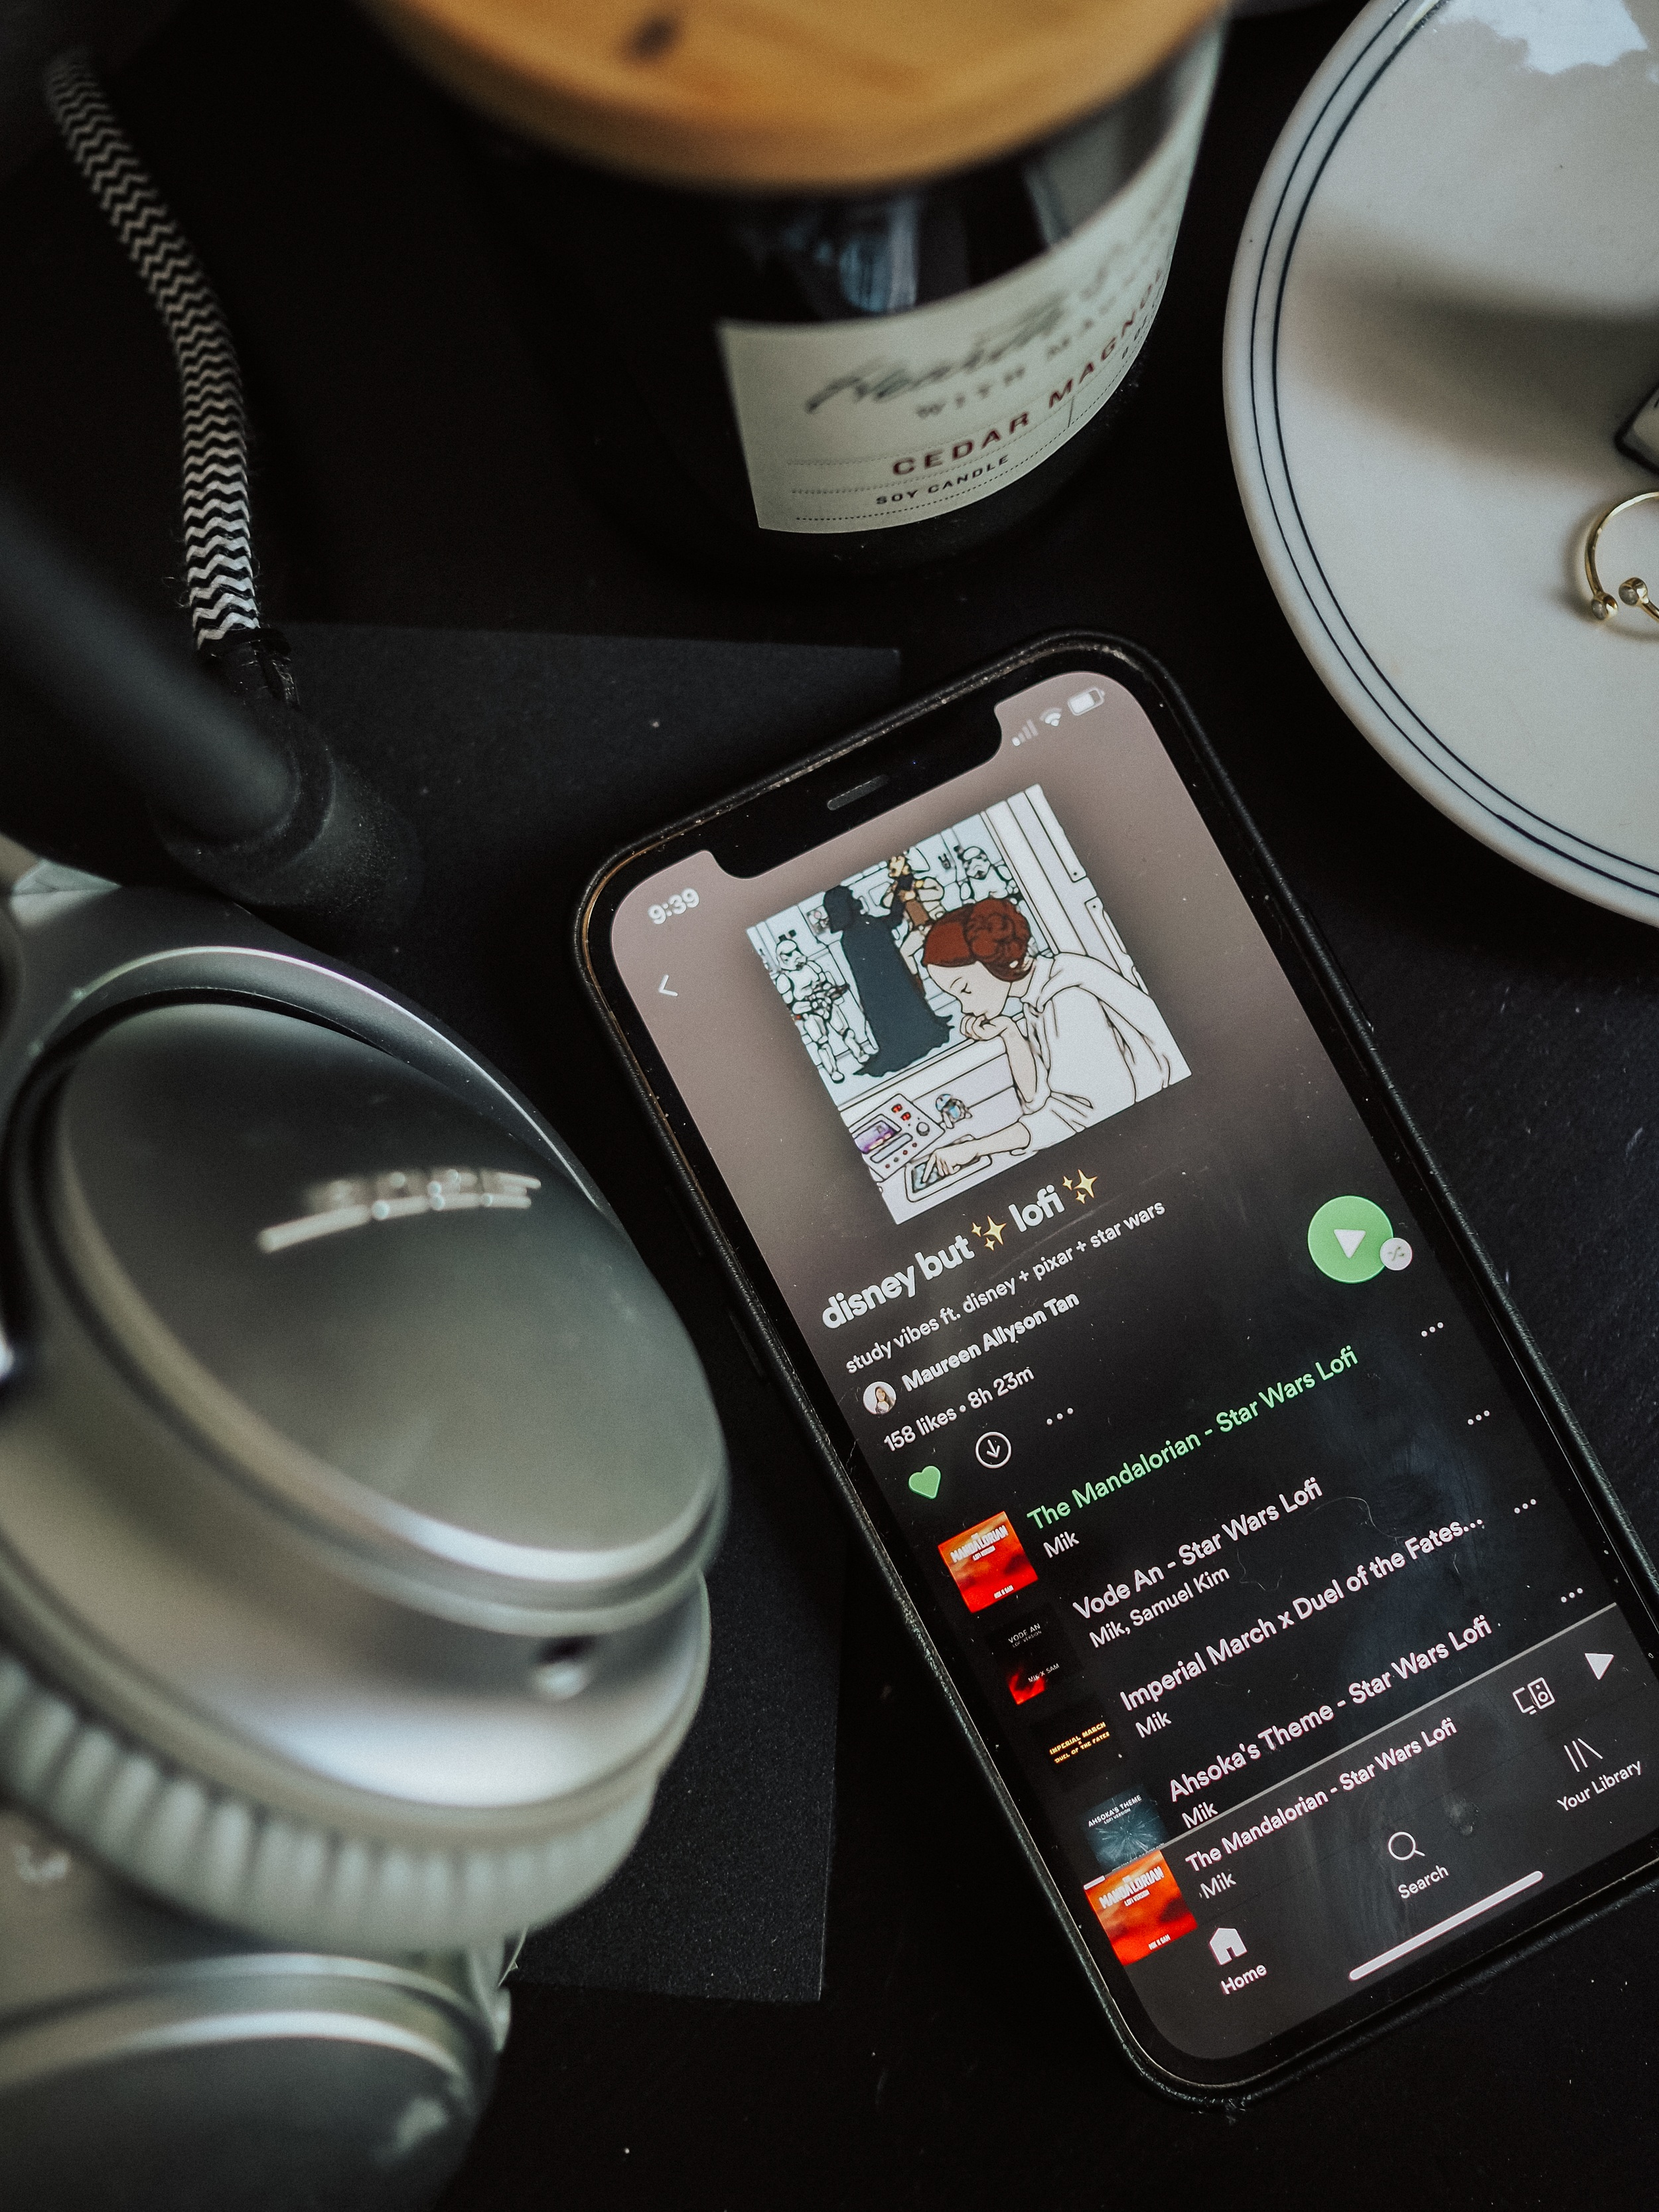 Find the best Spotify playlist for every occasion in this blog post guide. From working out to general vibes - this list has it all.